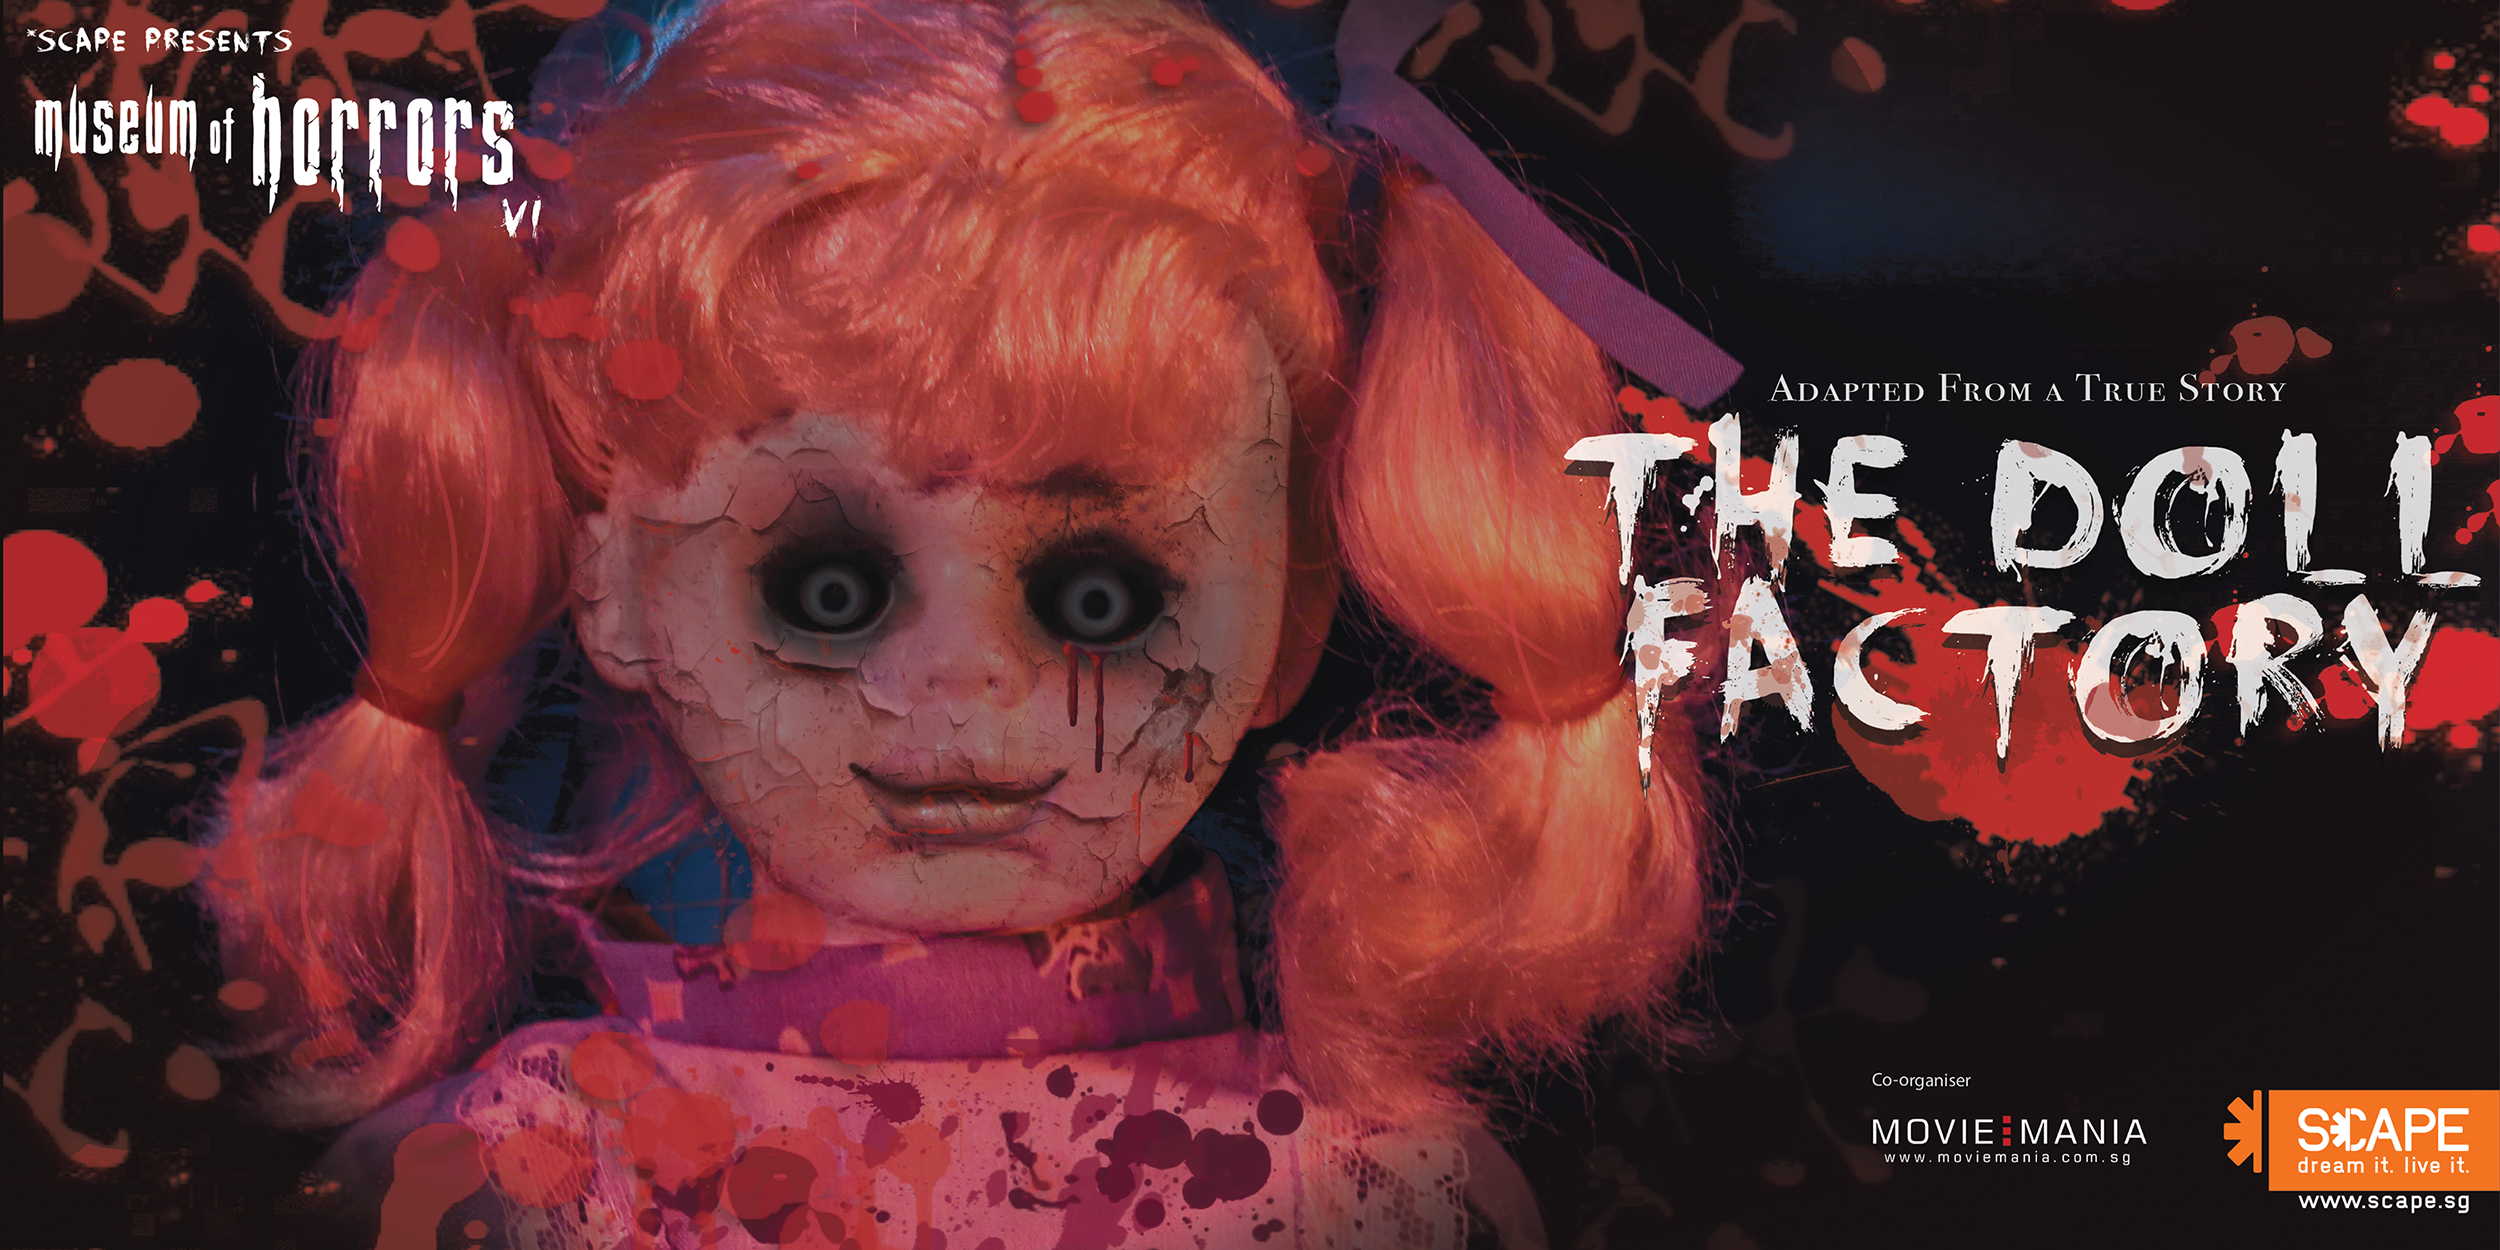 Halloween-events-venuerific-blog-scape-museum-of-horror-doll-factory